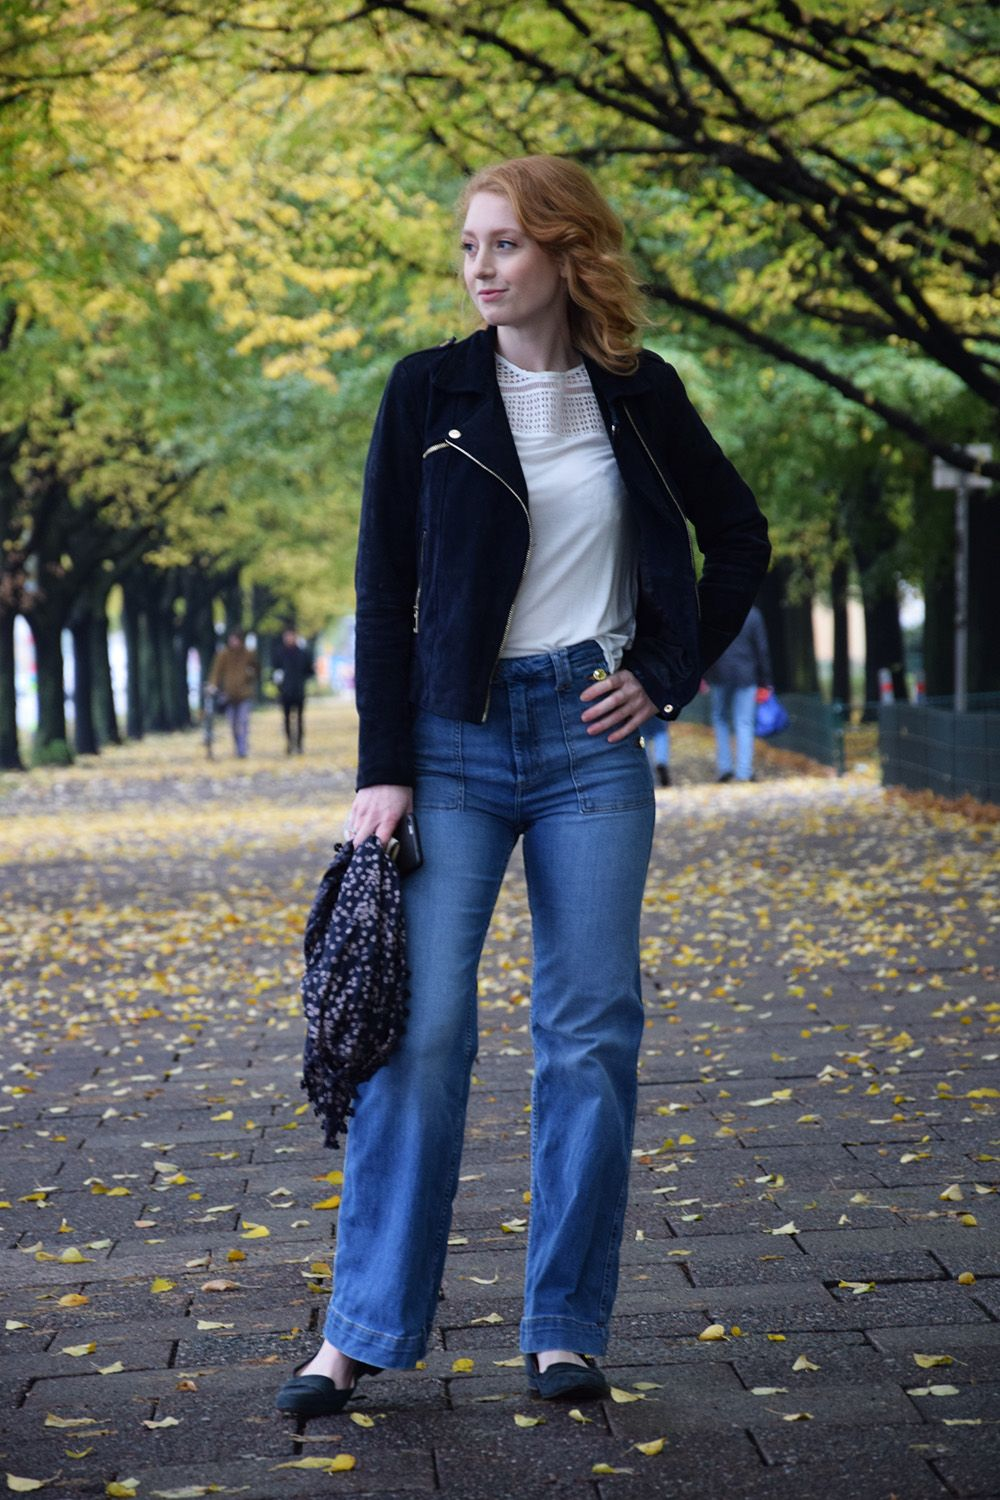 High Waisted Jeans kombinieren  #mode #fashion #fashionblog #modeblog #advanceyourstyle #style #lookbook #berlin Outfit posted on http://www.advance-your-style.de